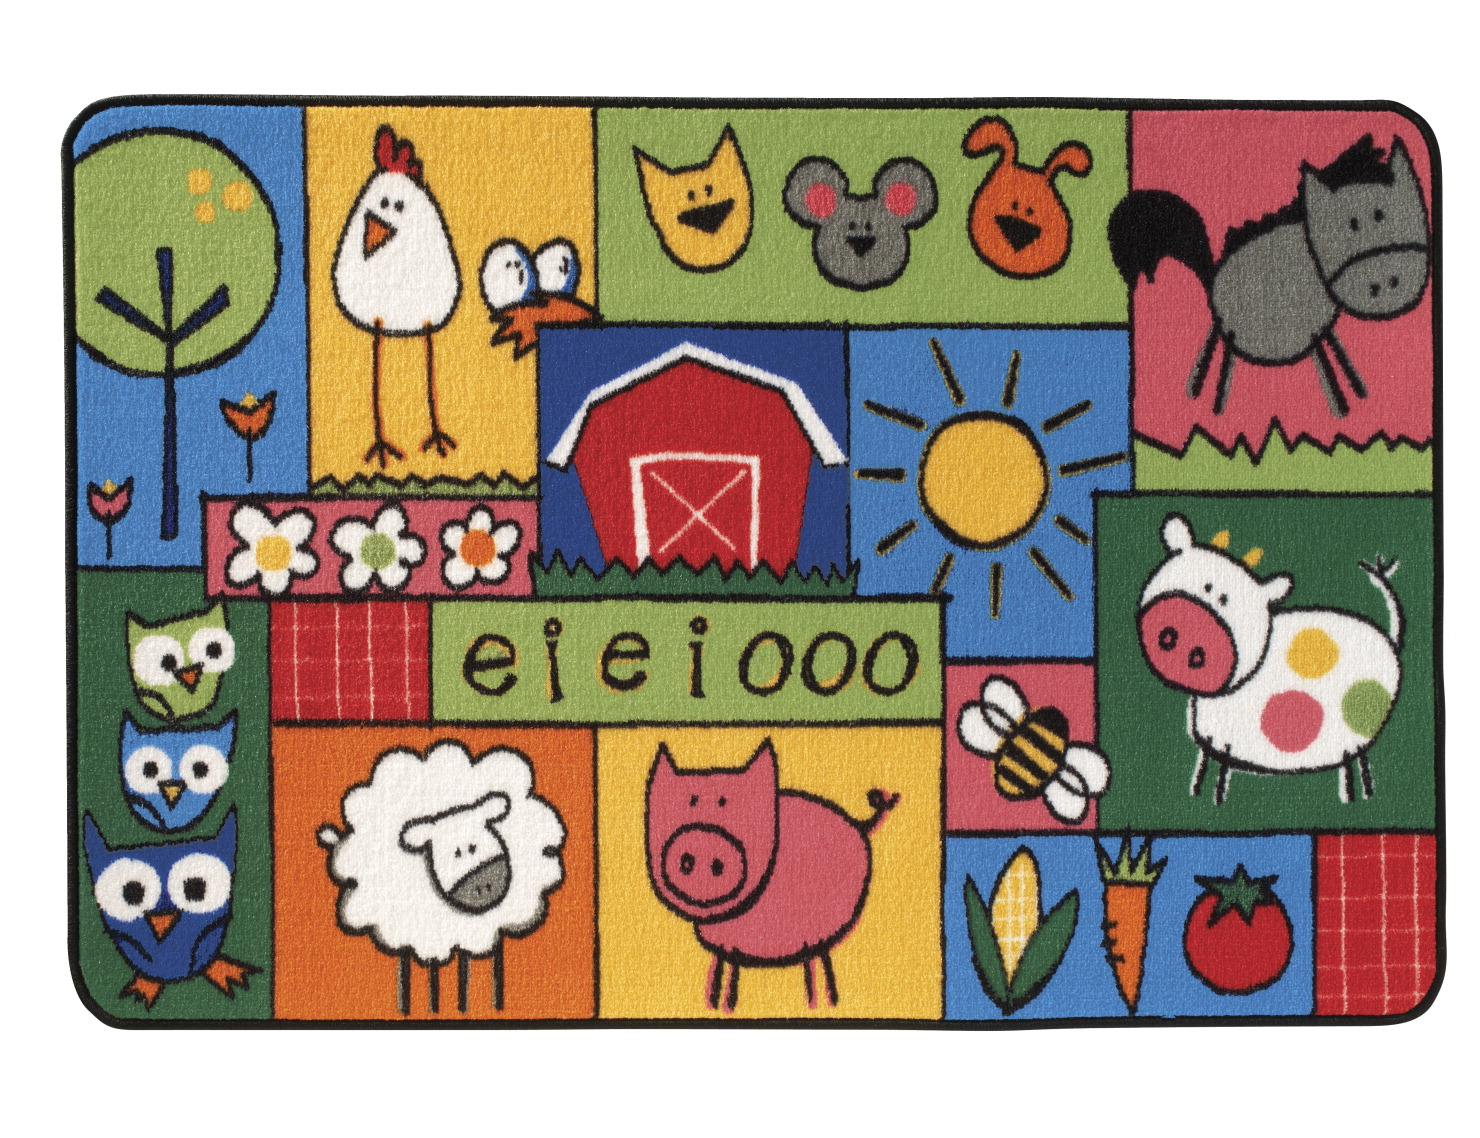 Carpets for Kids Value Line Old MacDonald's Farm Rug, 4 x 6 Feet, Rectangle